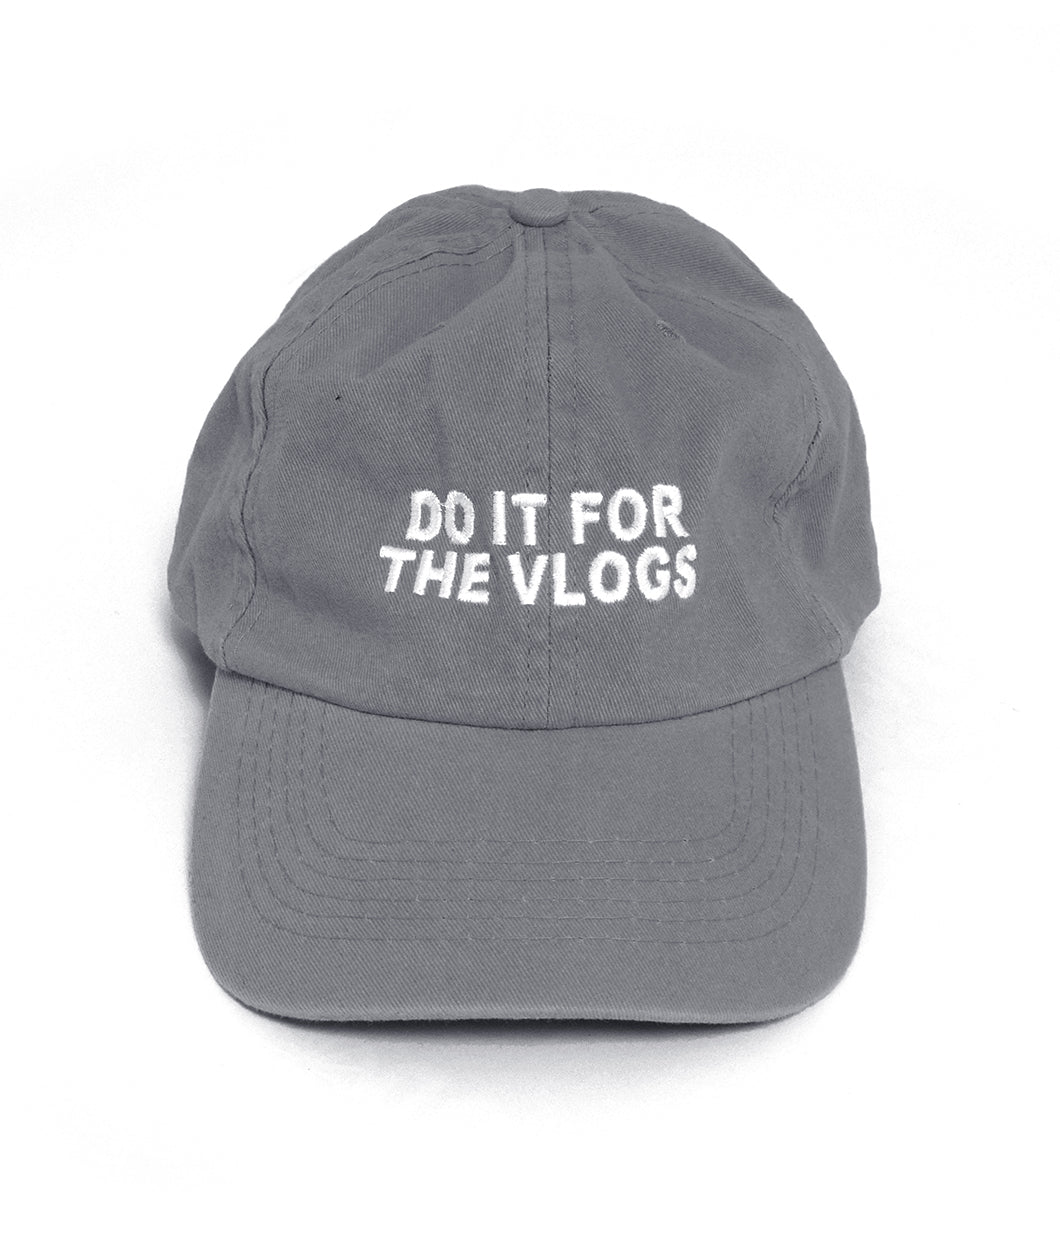 Do It For The Vlogs Polo Hat